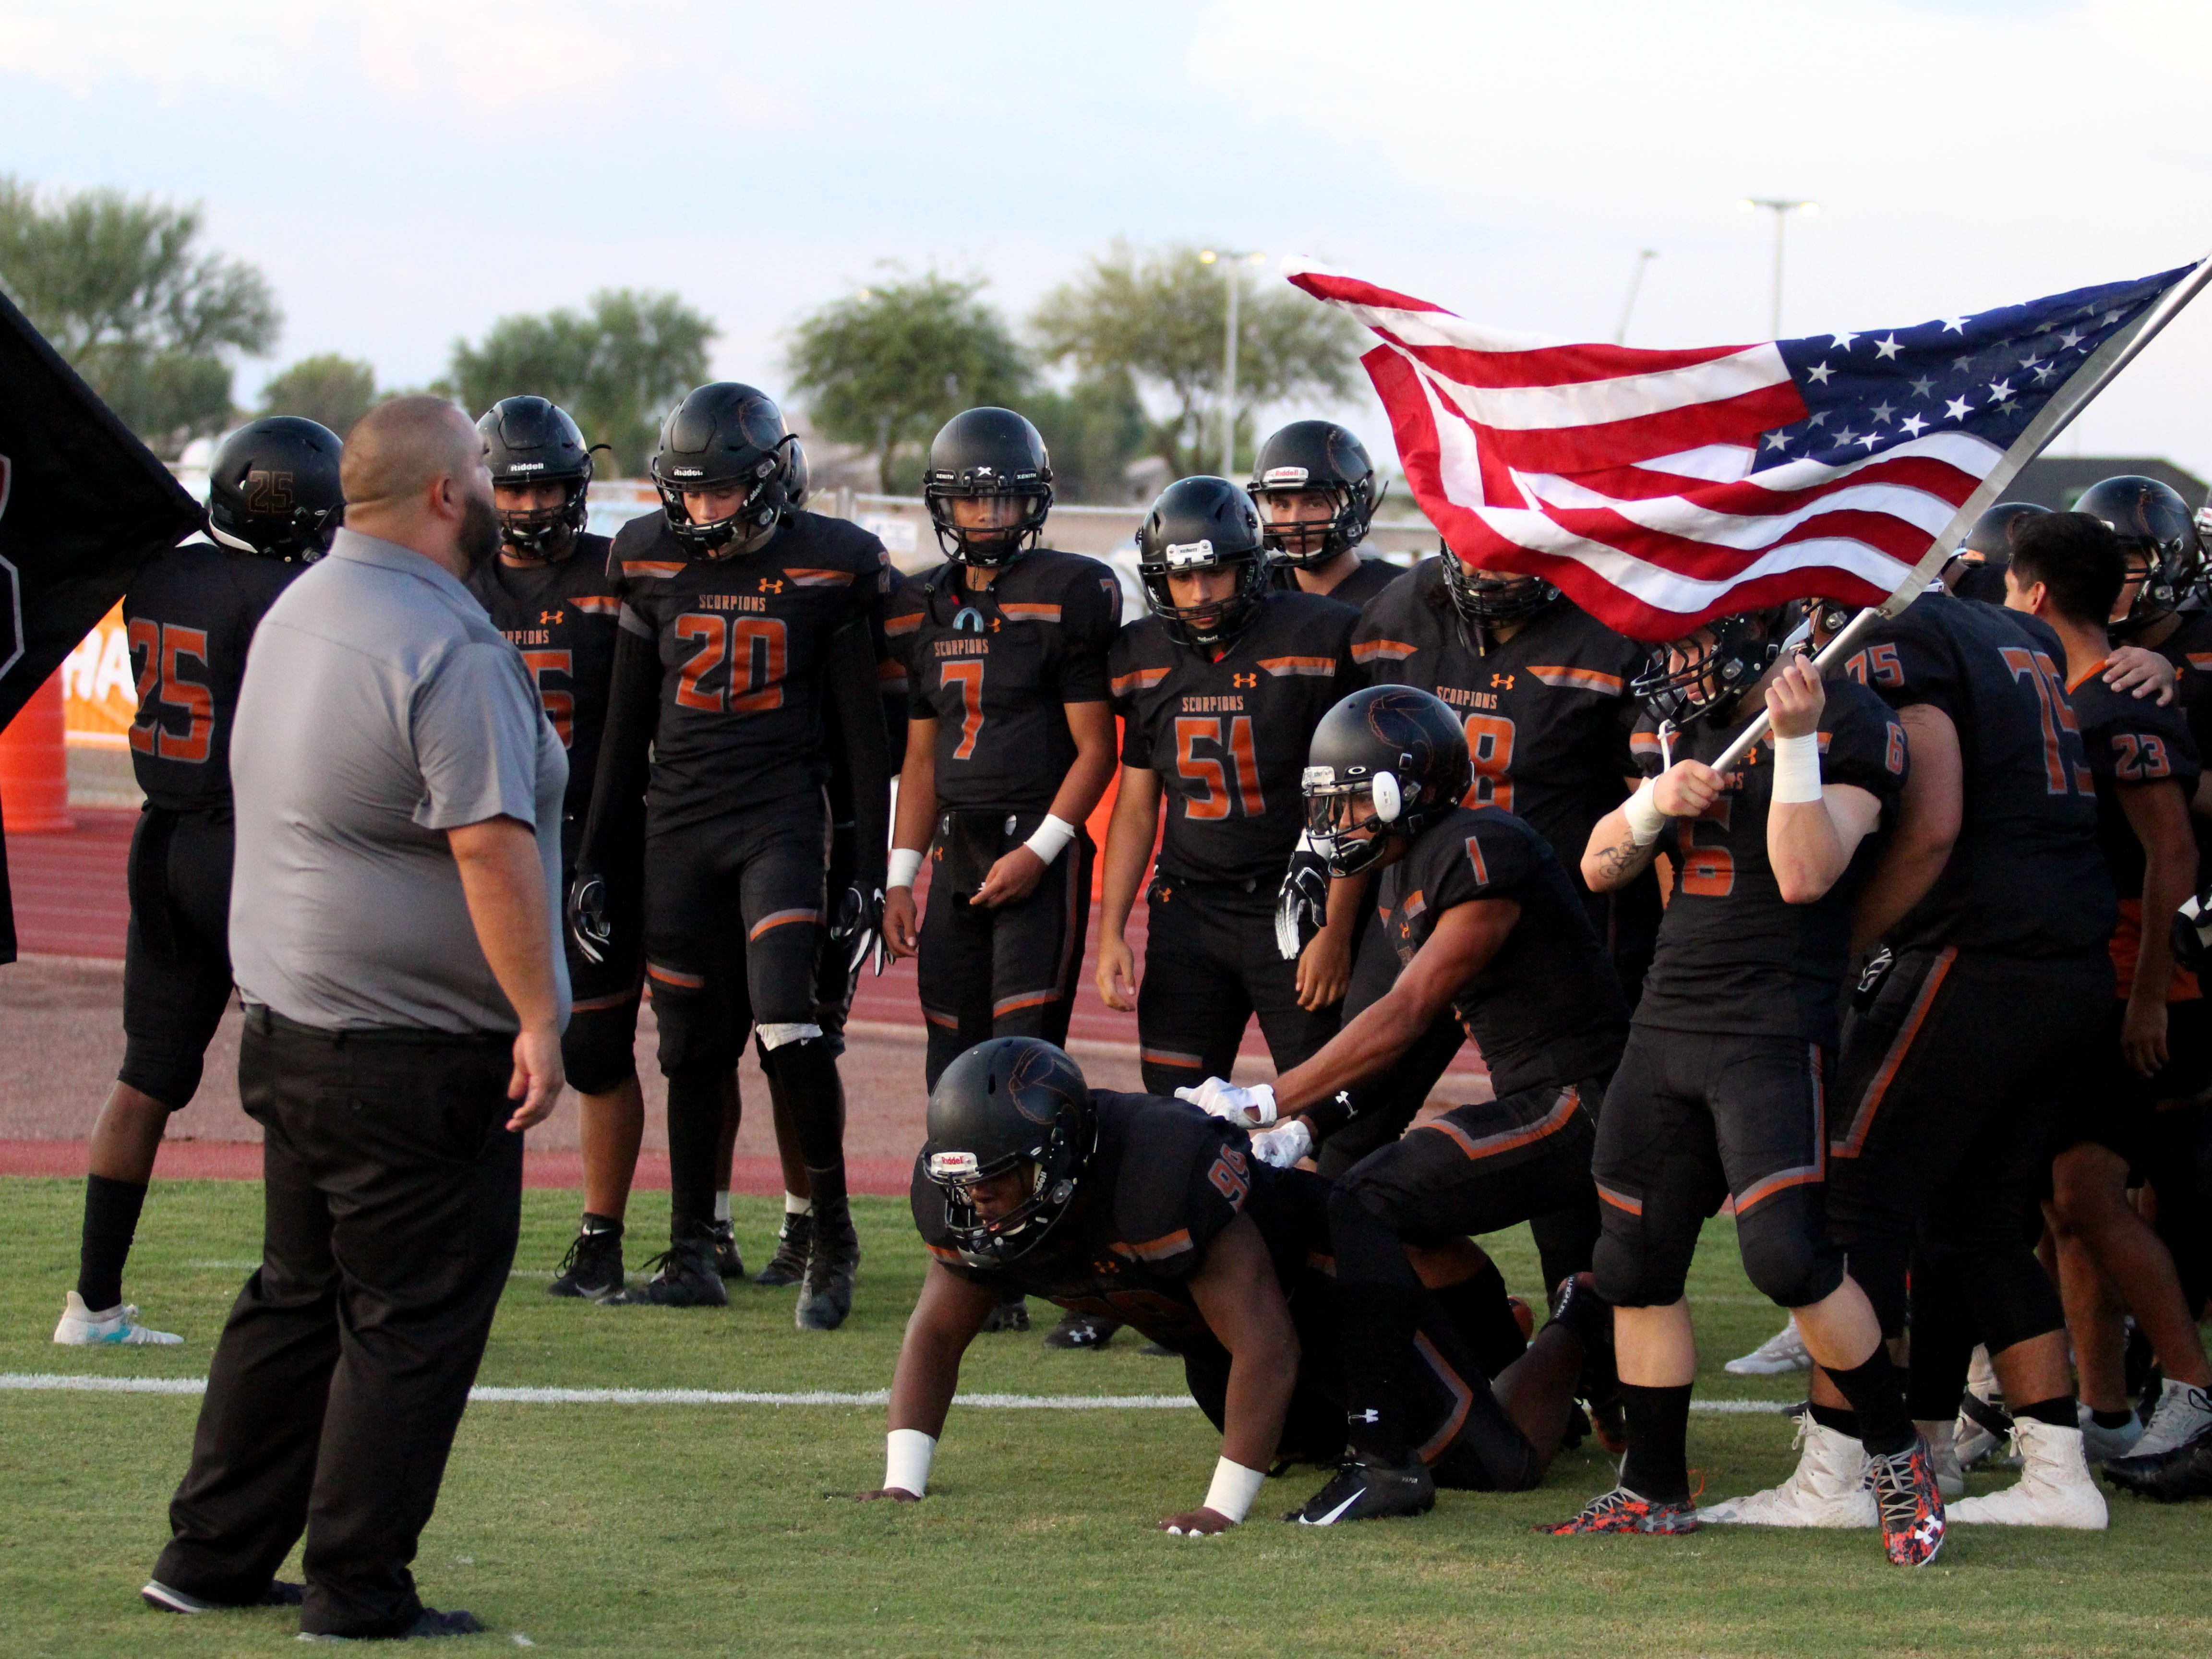 Desert Edge gets ready to run onto the field before game against Moon Valley, Goodyear, Ariz. August 24, 2018.